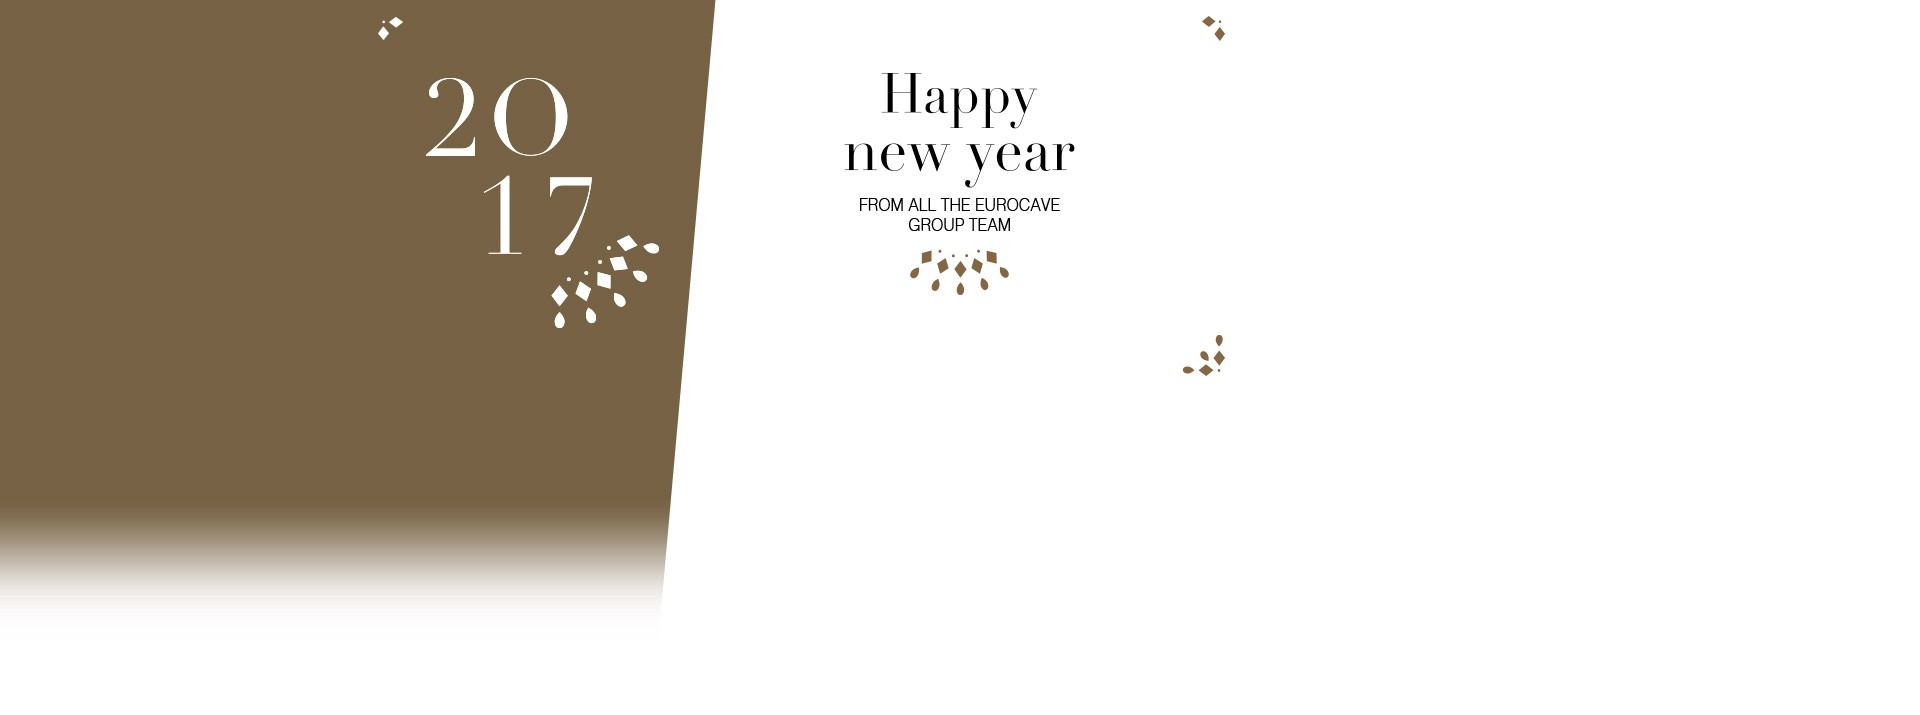 HAPPY NEW YEAR from all the EuroCave team!